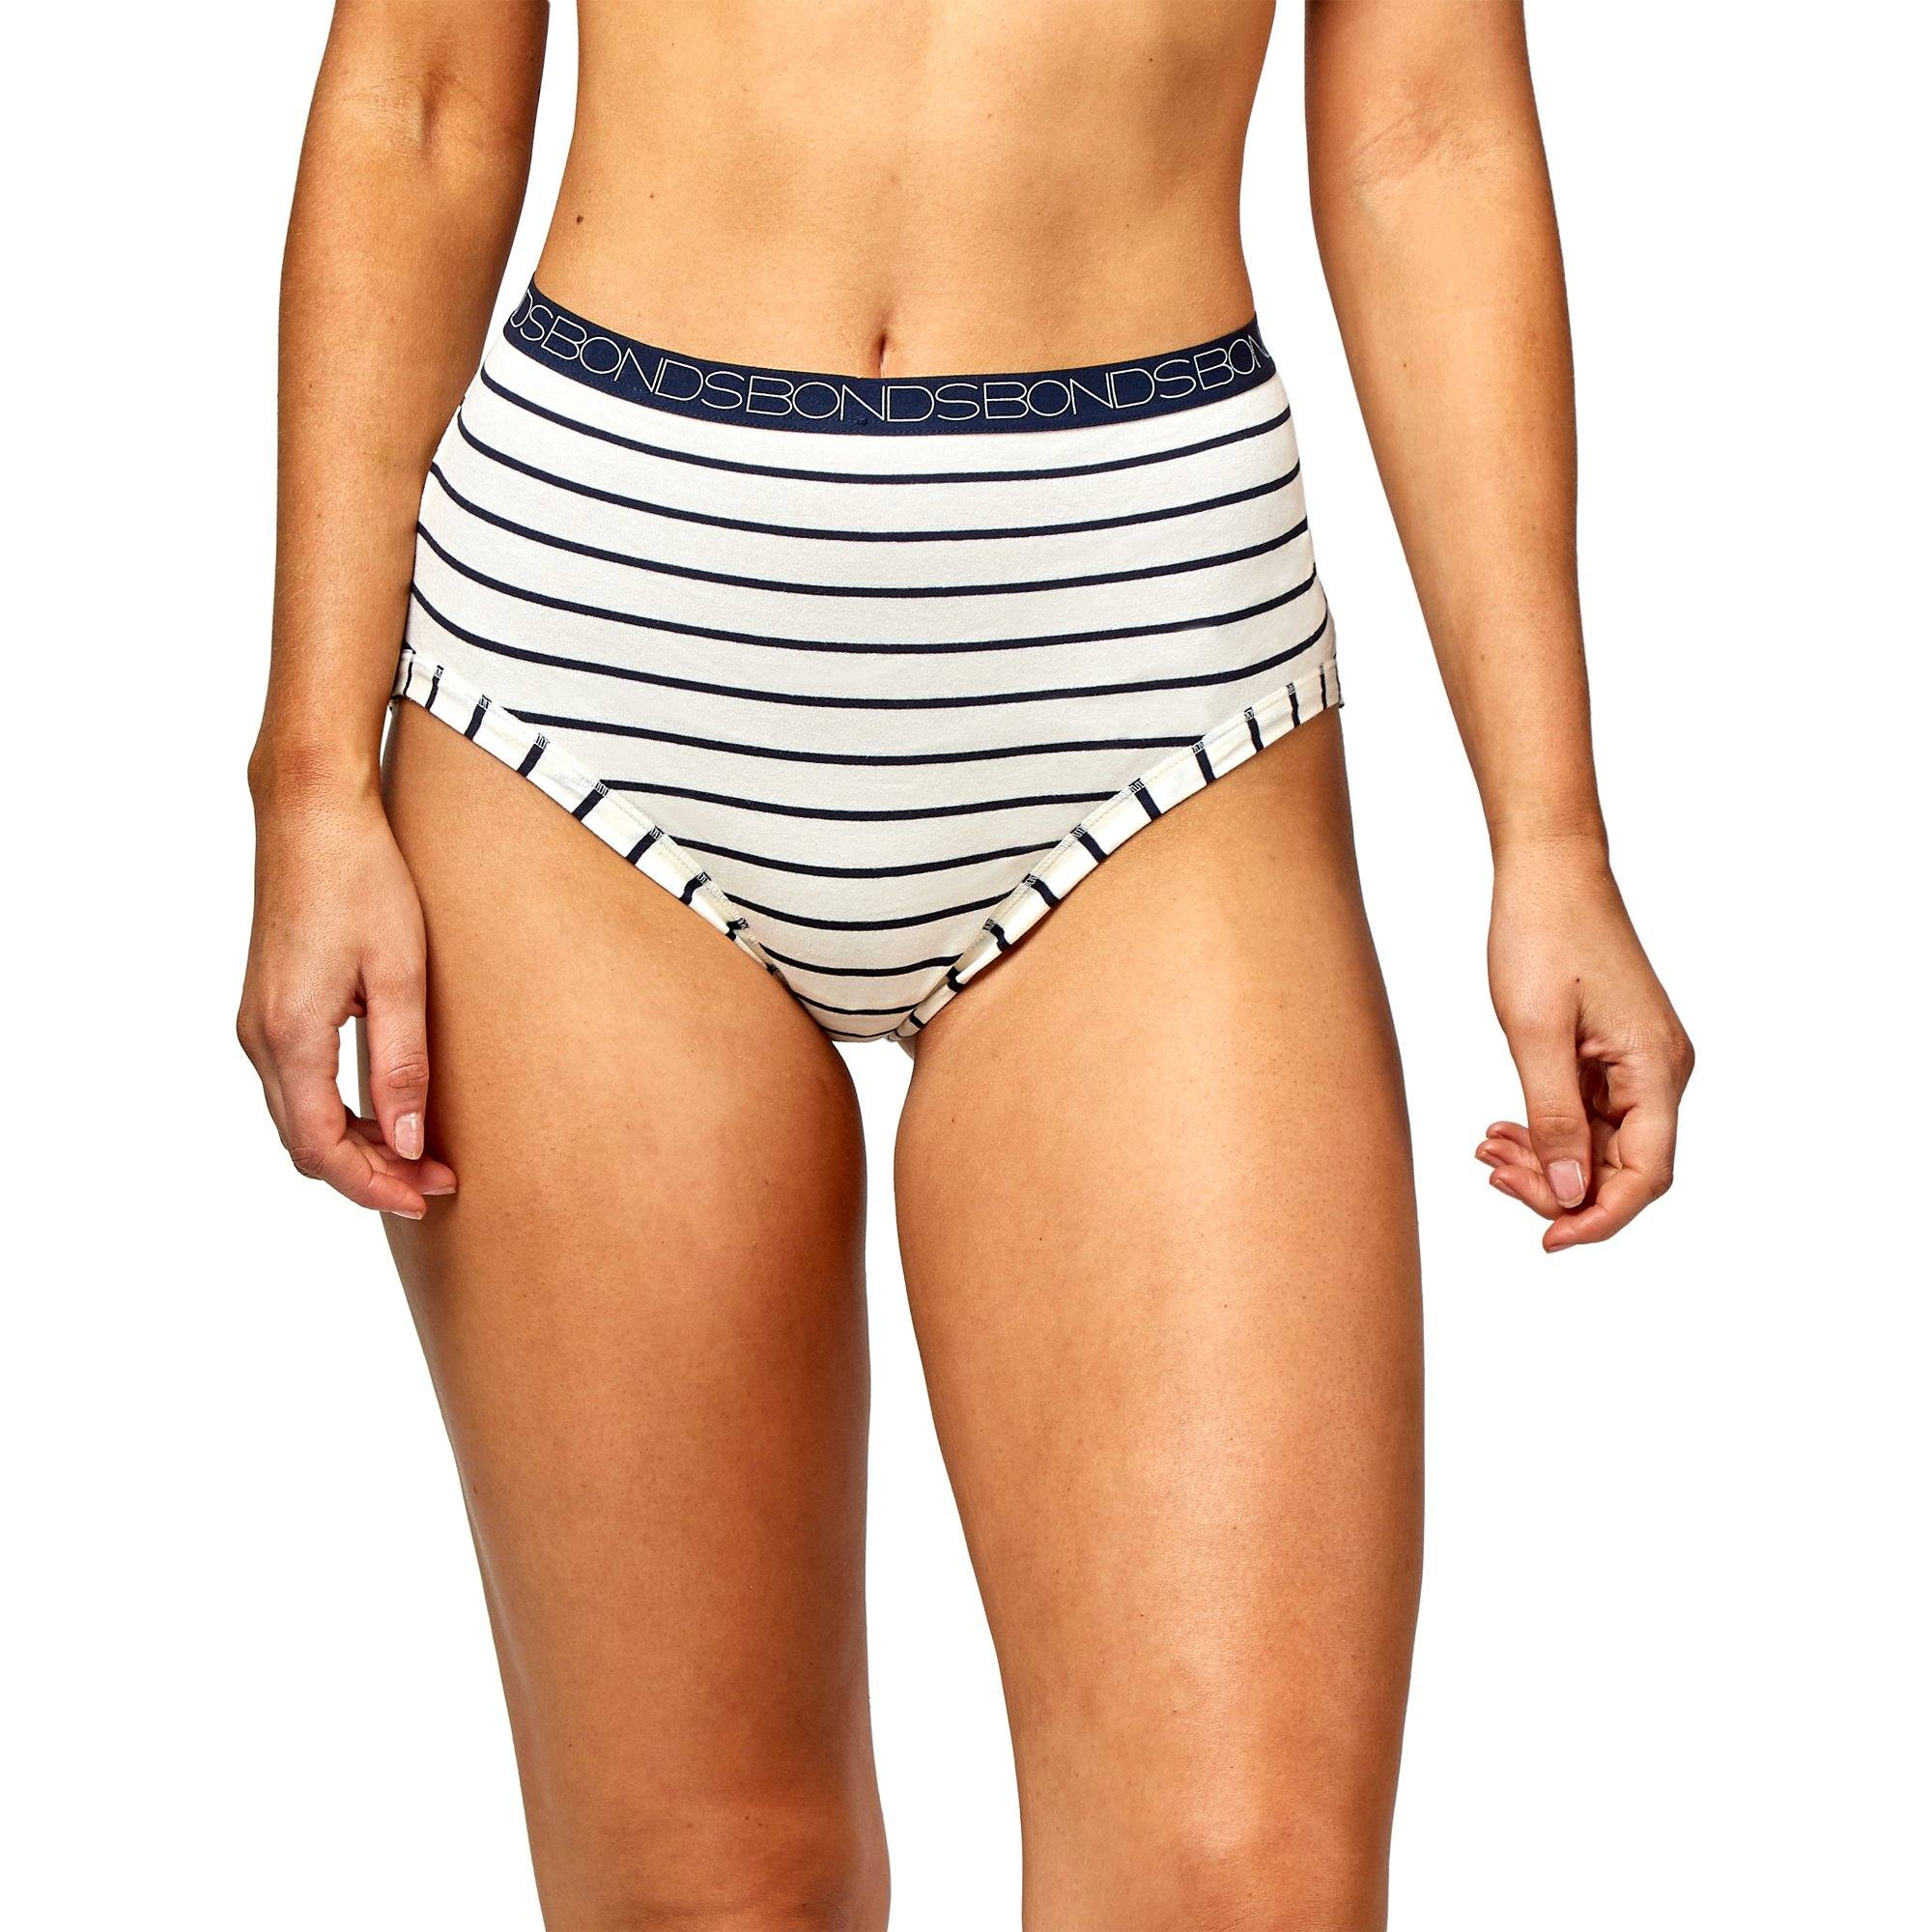 Bonds Women'S Underwear Cottontails Yds F/B - Stripe 22 Women's Underwear Bonds